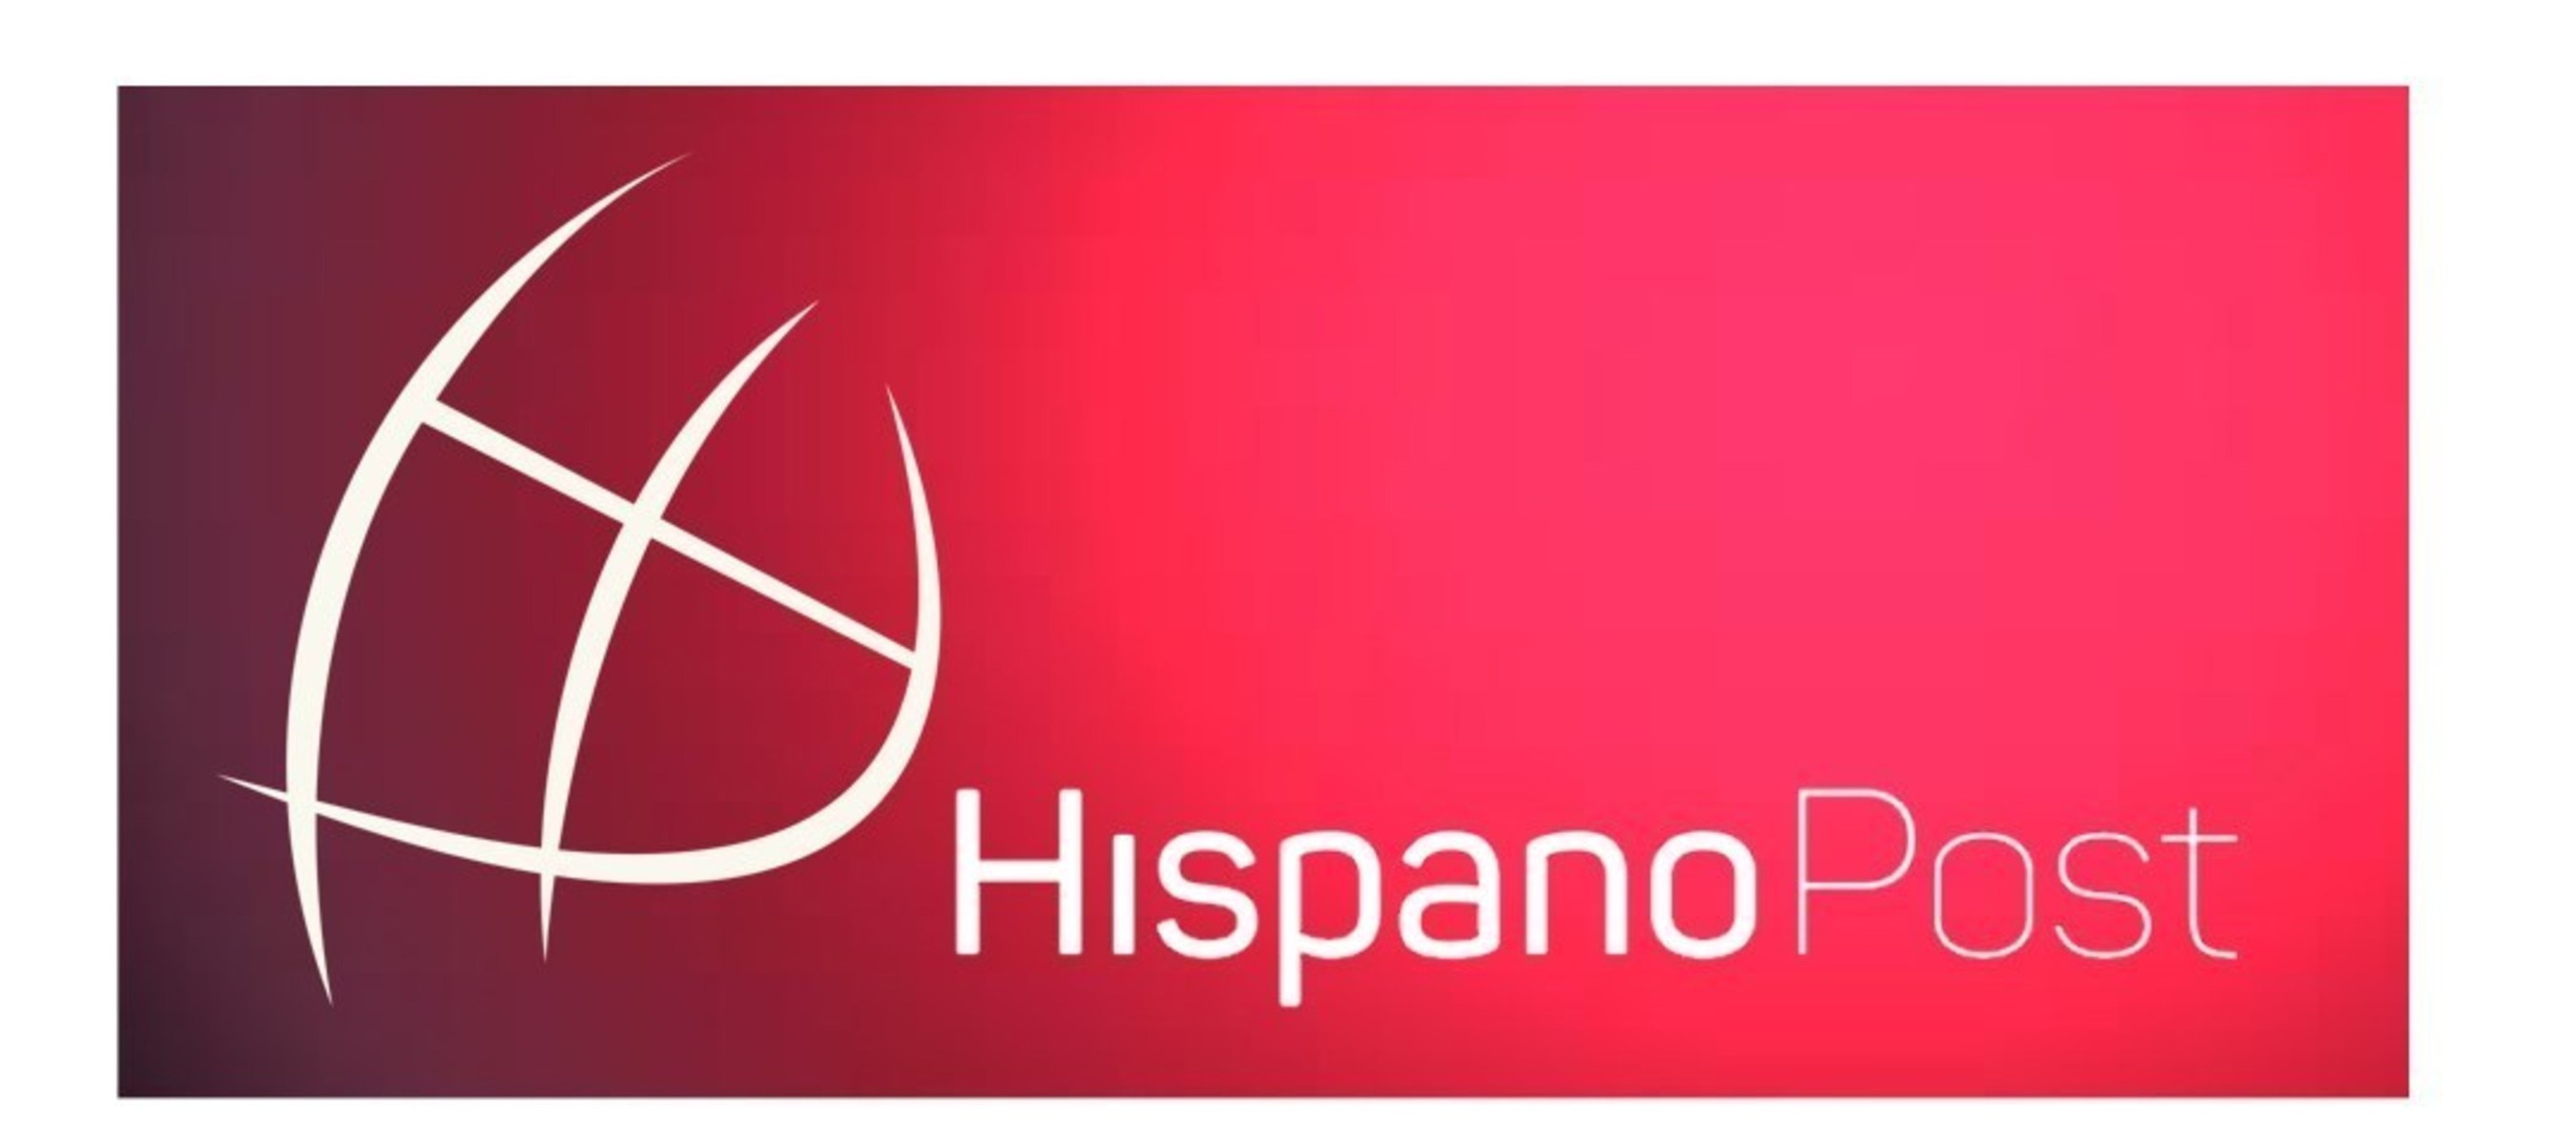 HispanoPost, a new digital platform offering original editorial and video content for the worldwide